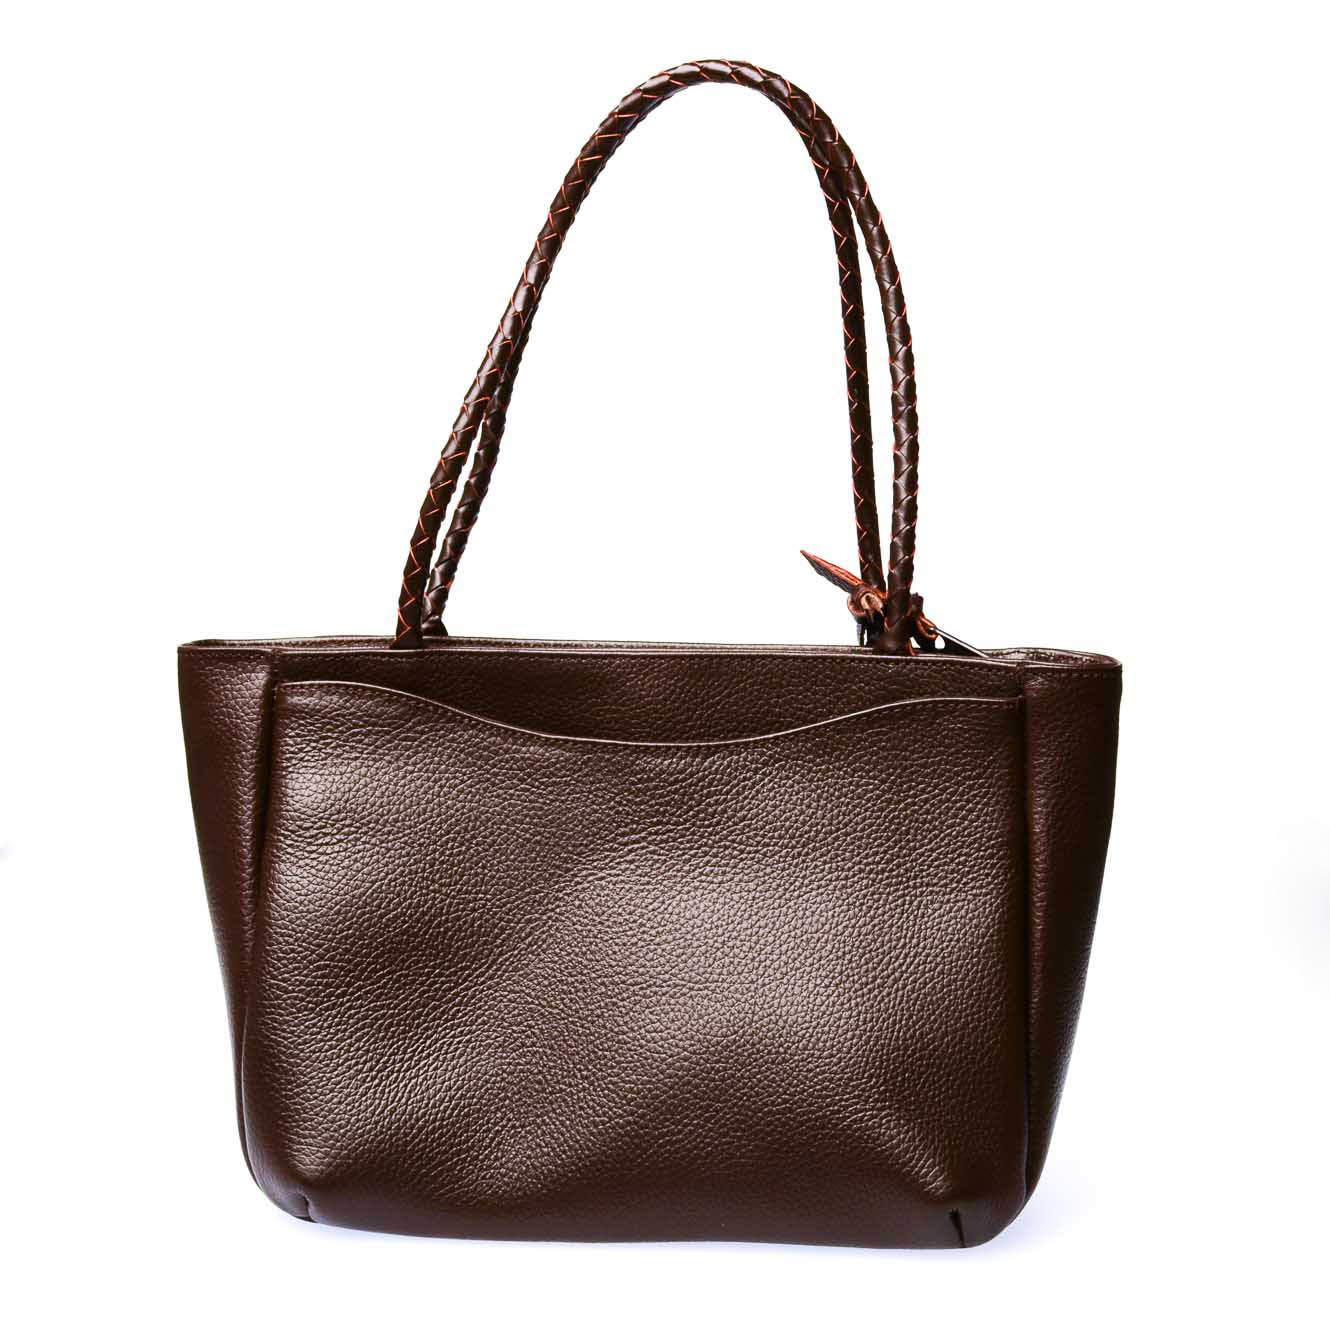 Our Tribe Women's Classic Hand Bag -660